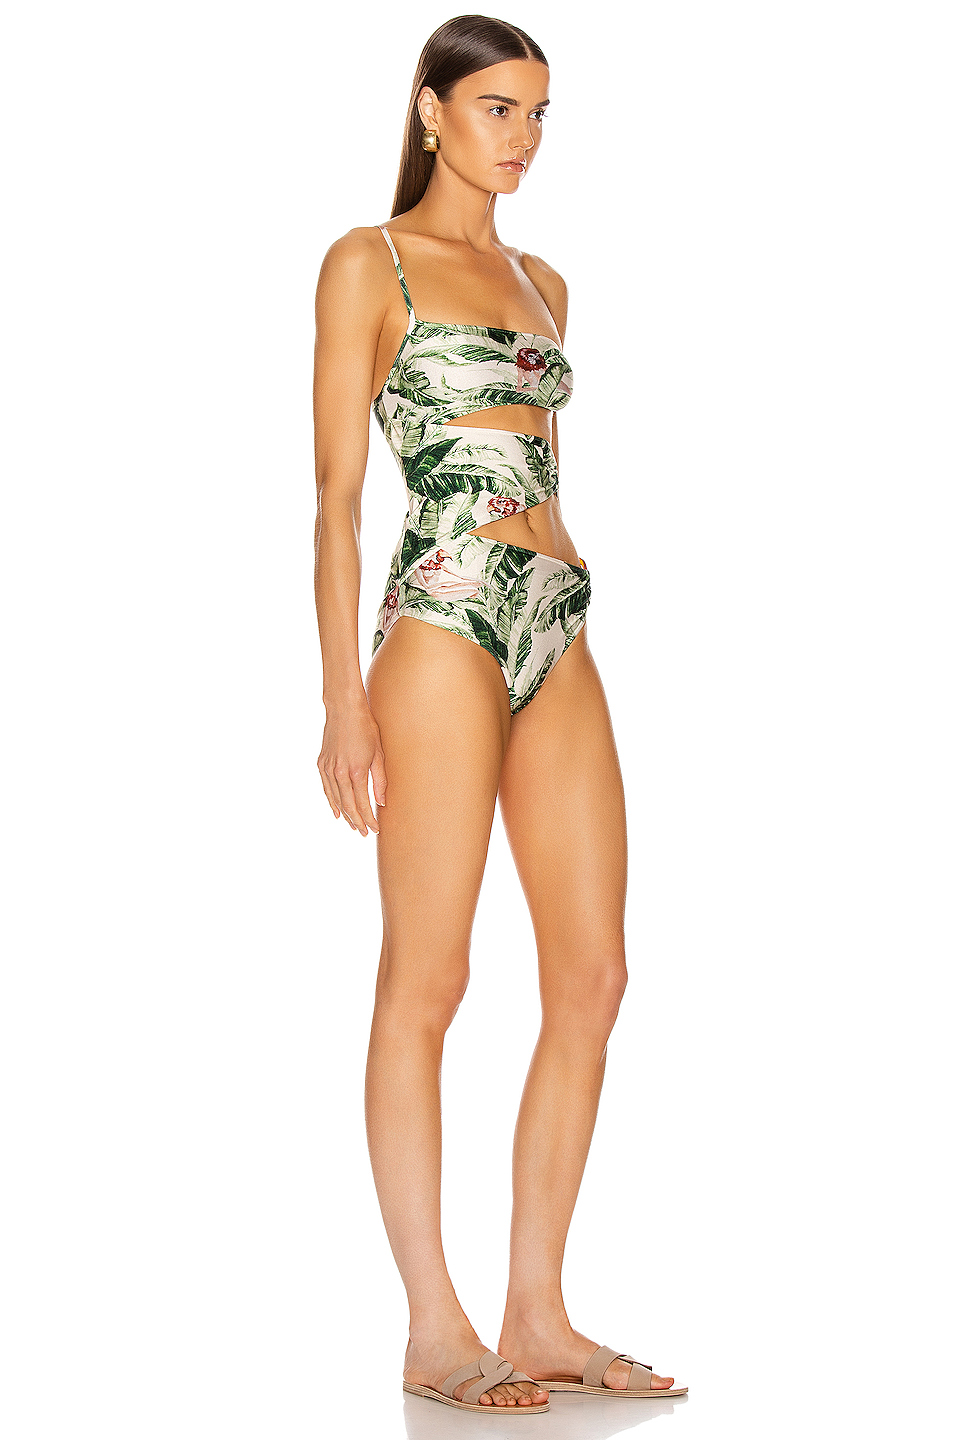 ADRIANA DEGREAS x Cult Gaia Tropical One Shoulder Swimsuit with Hoops